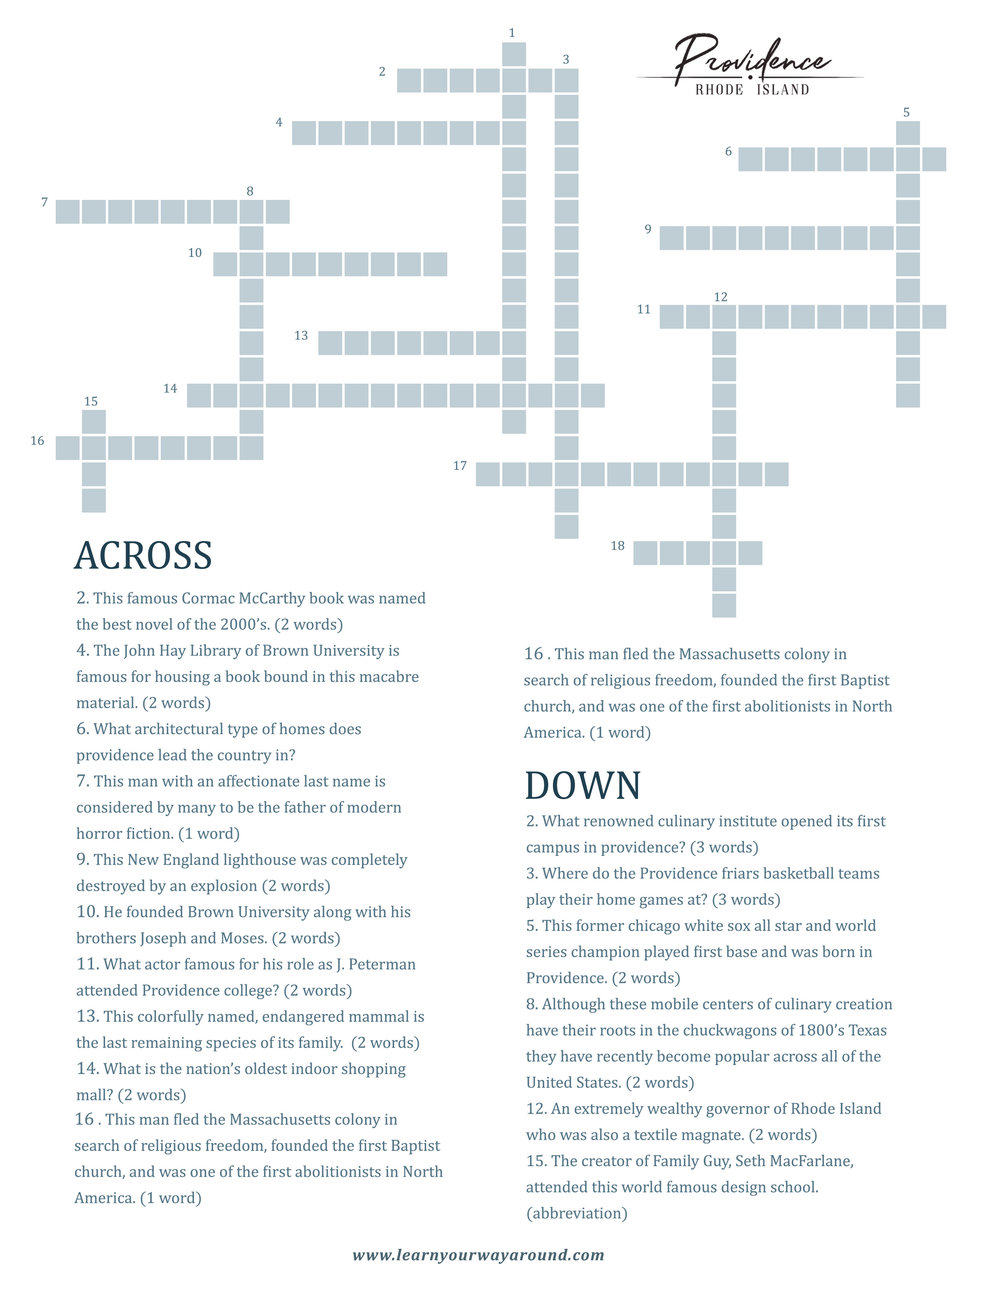 Copy of crosswordBlue.jpg